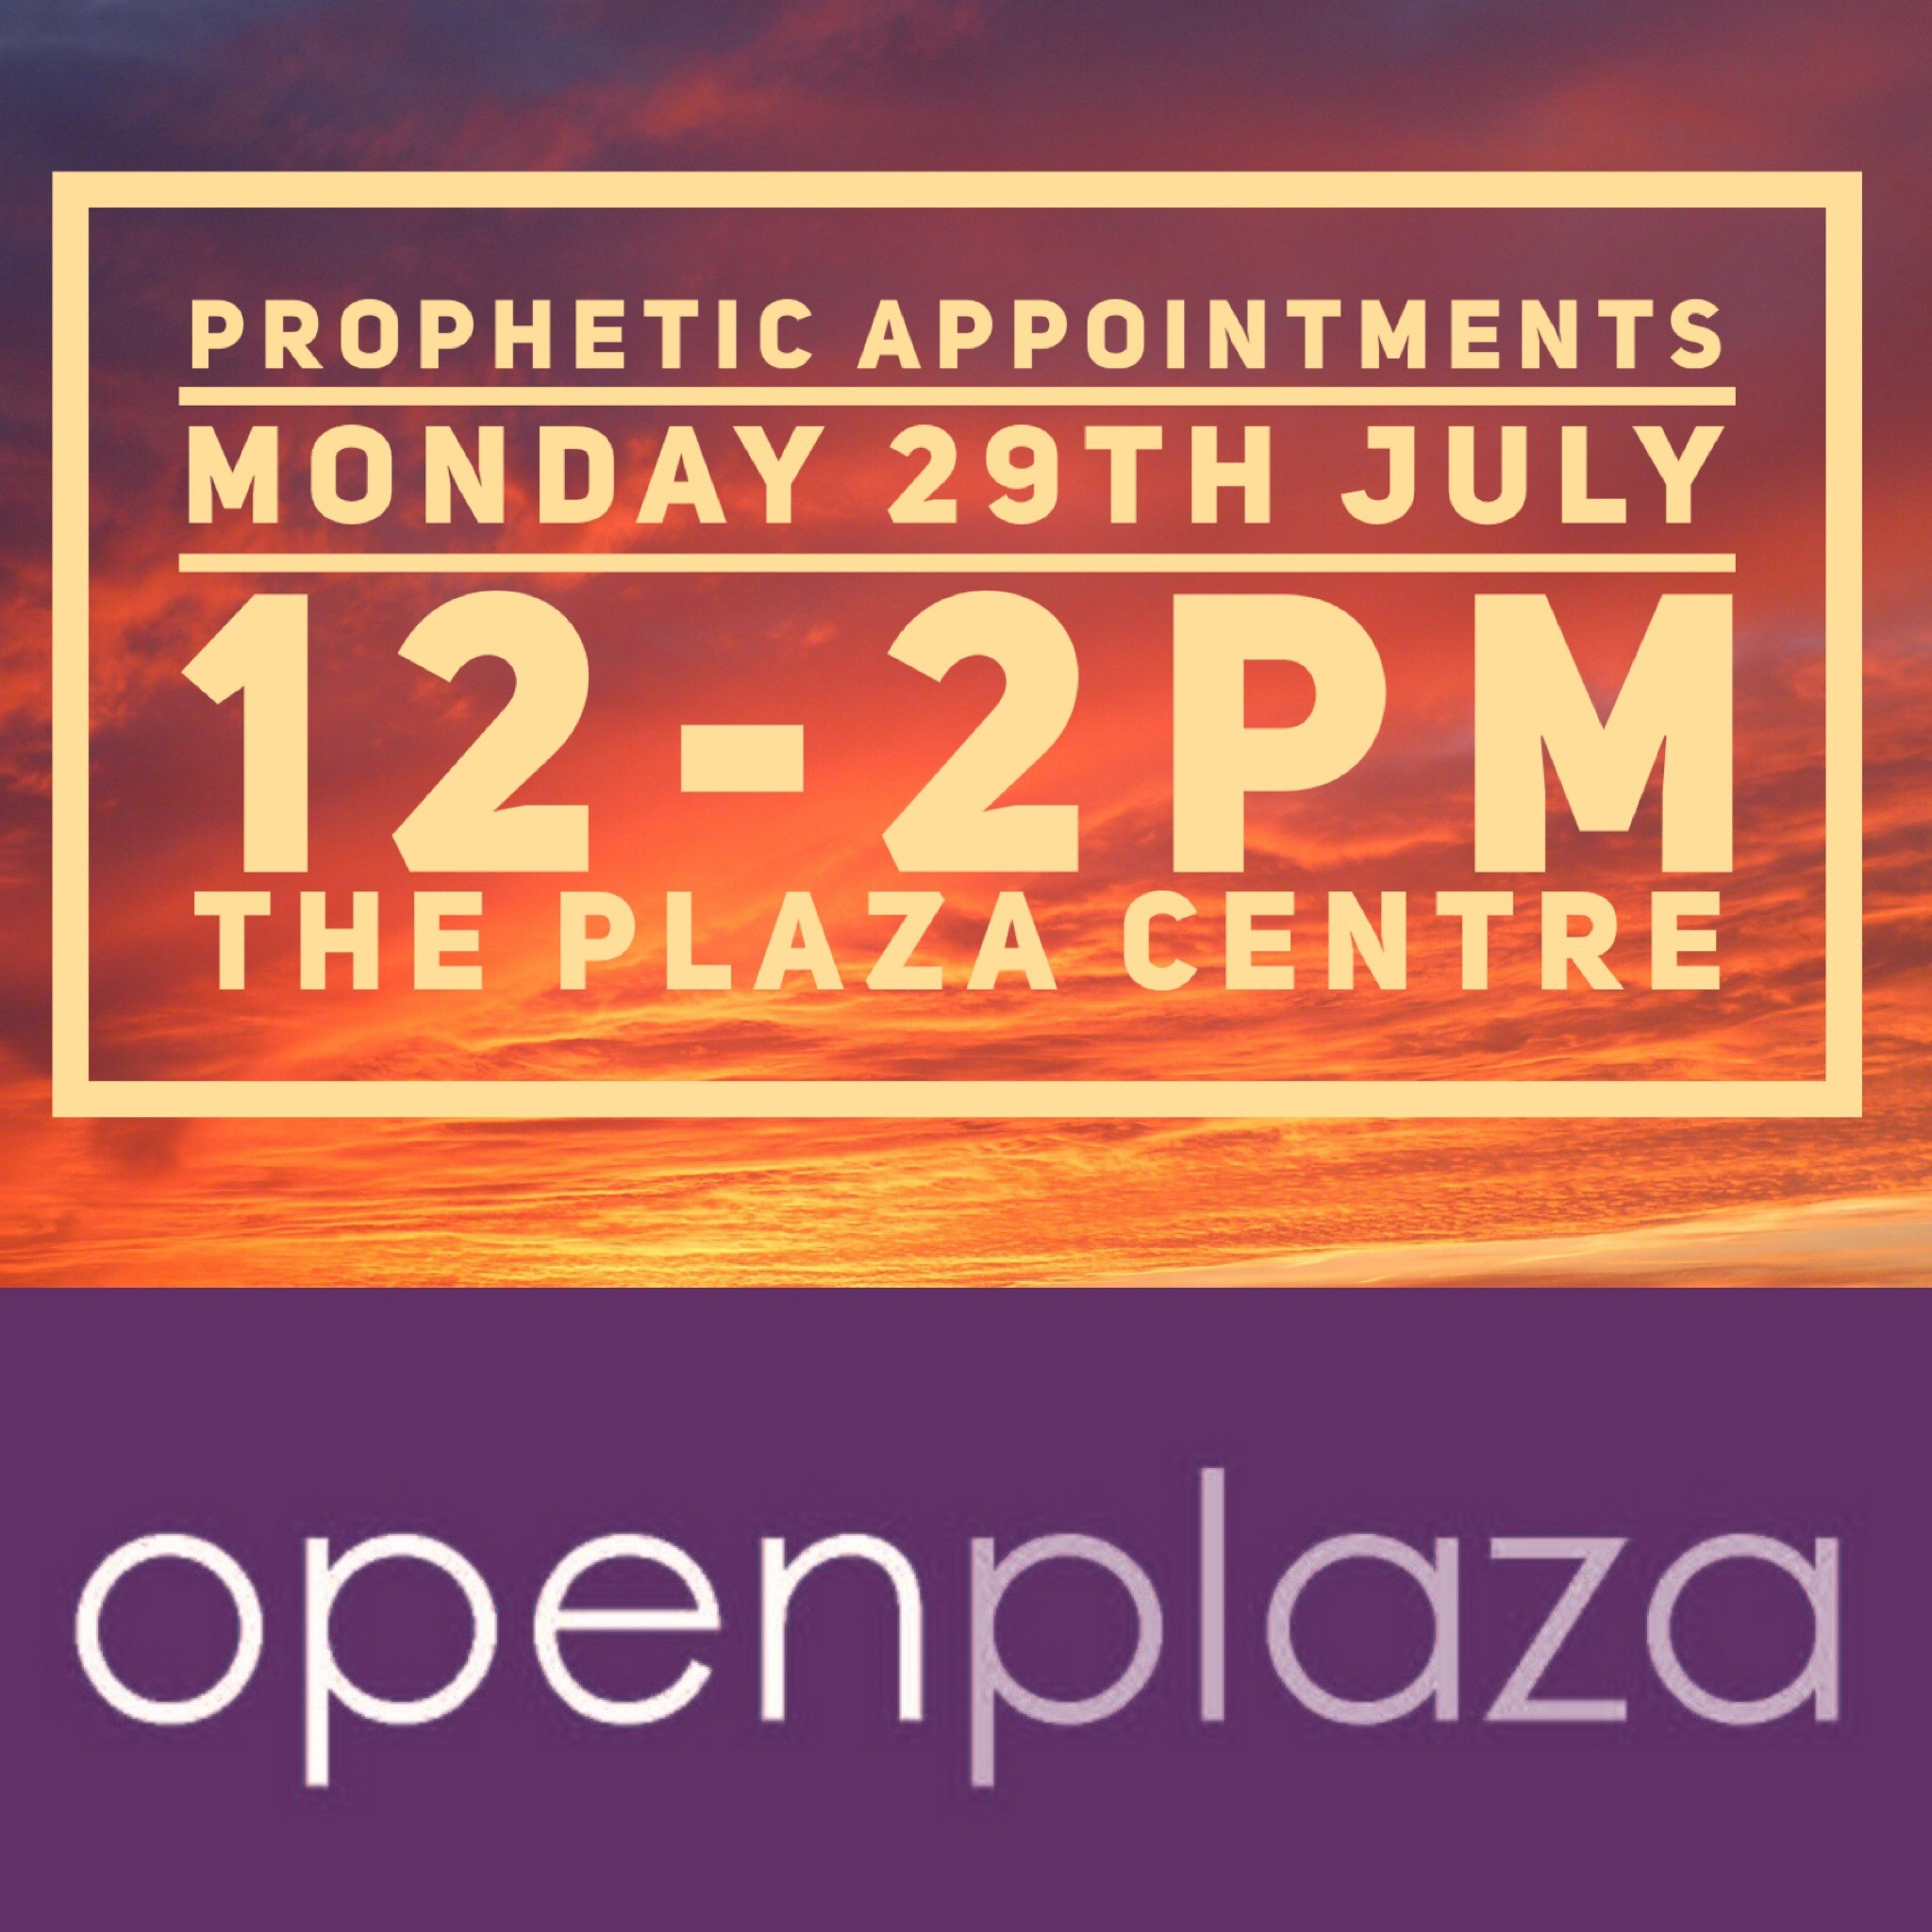 Need some encouragement?  Come along for a prophetic appointment